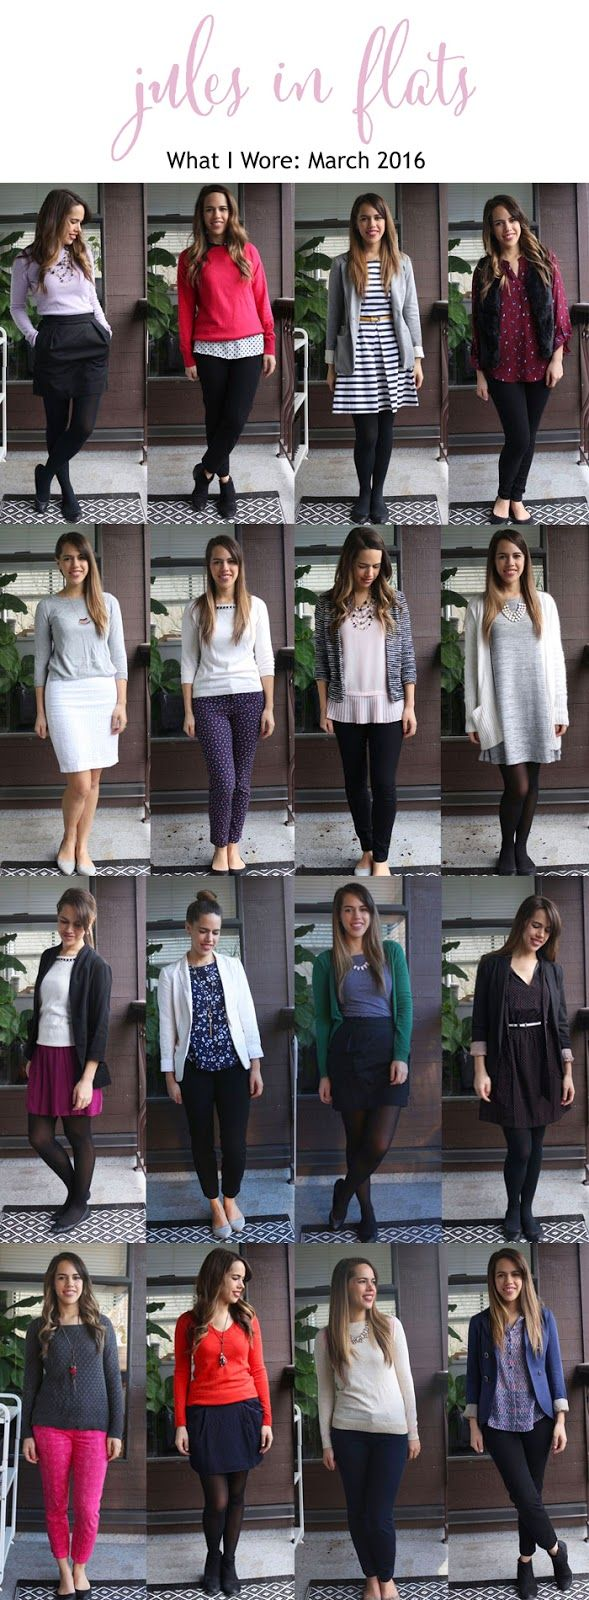 Jules in Flats Monthly Outfit Roundup March 2016